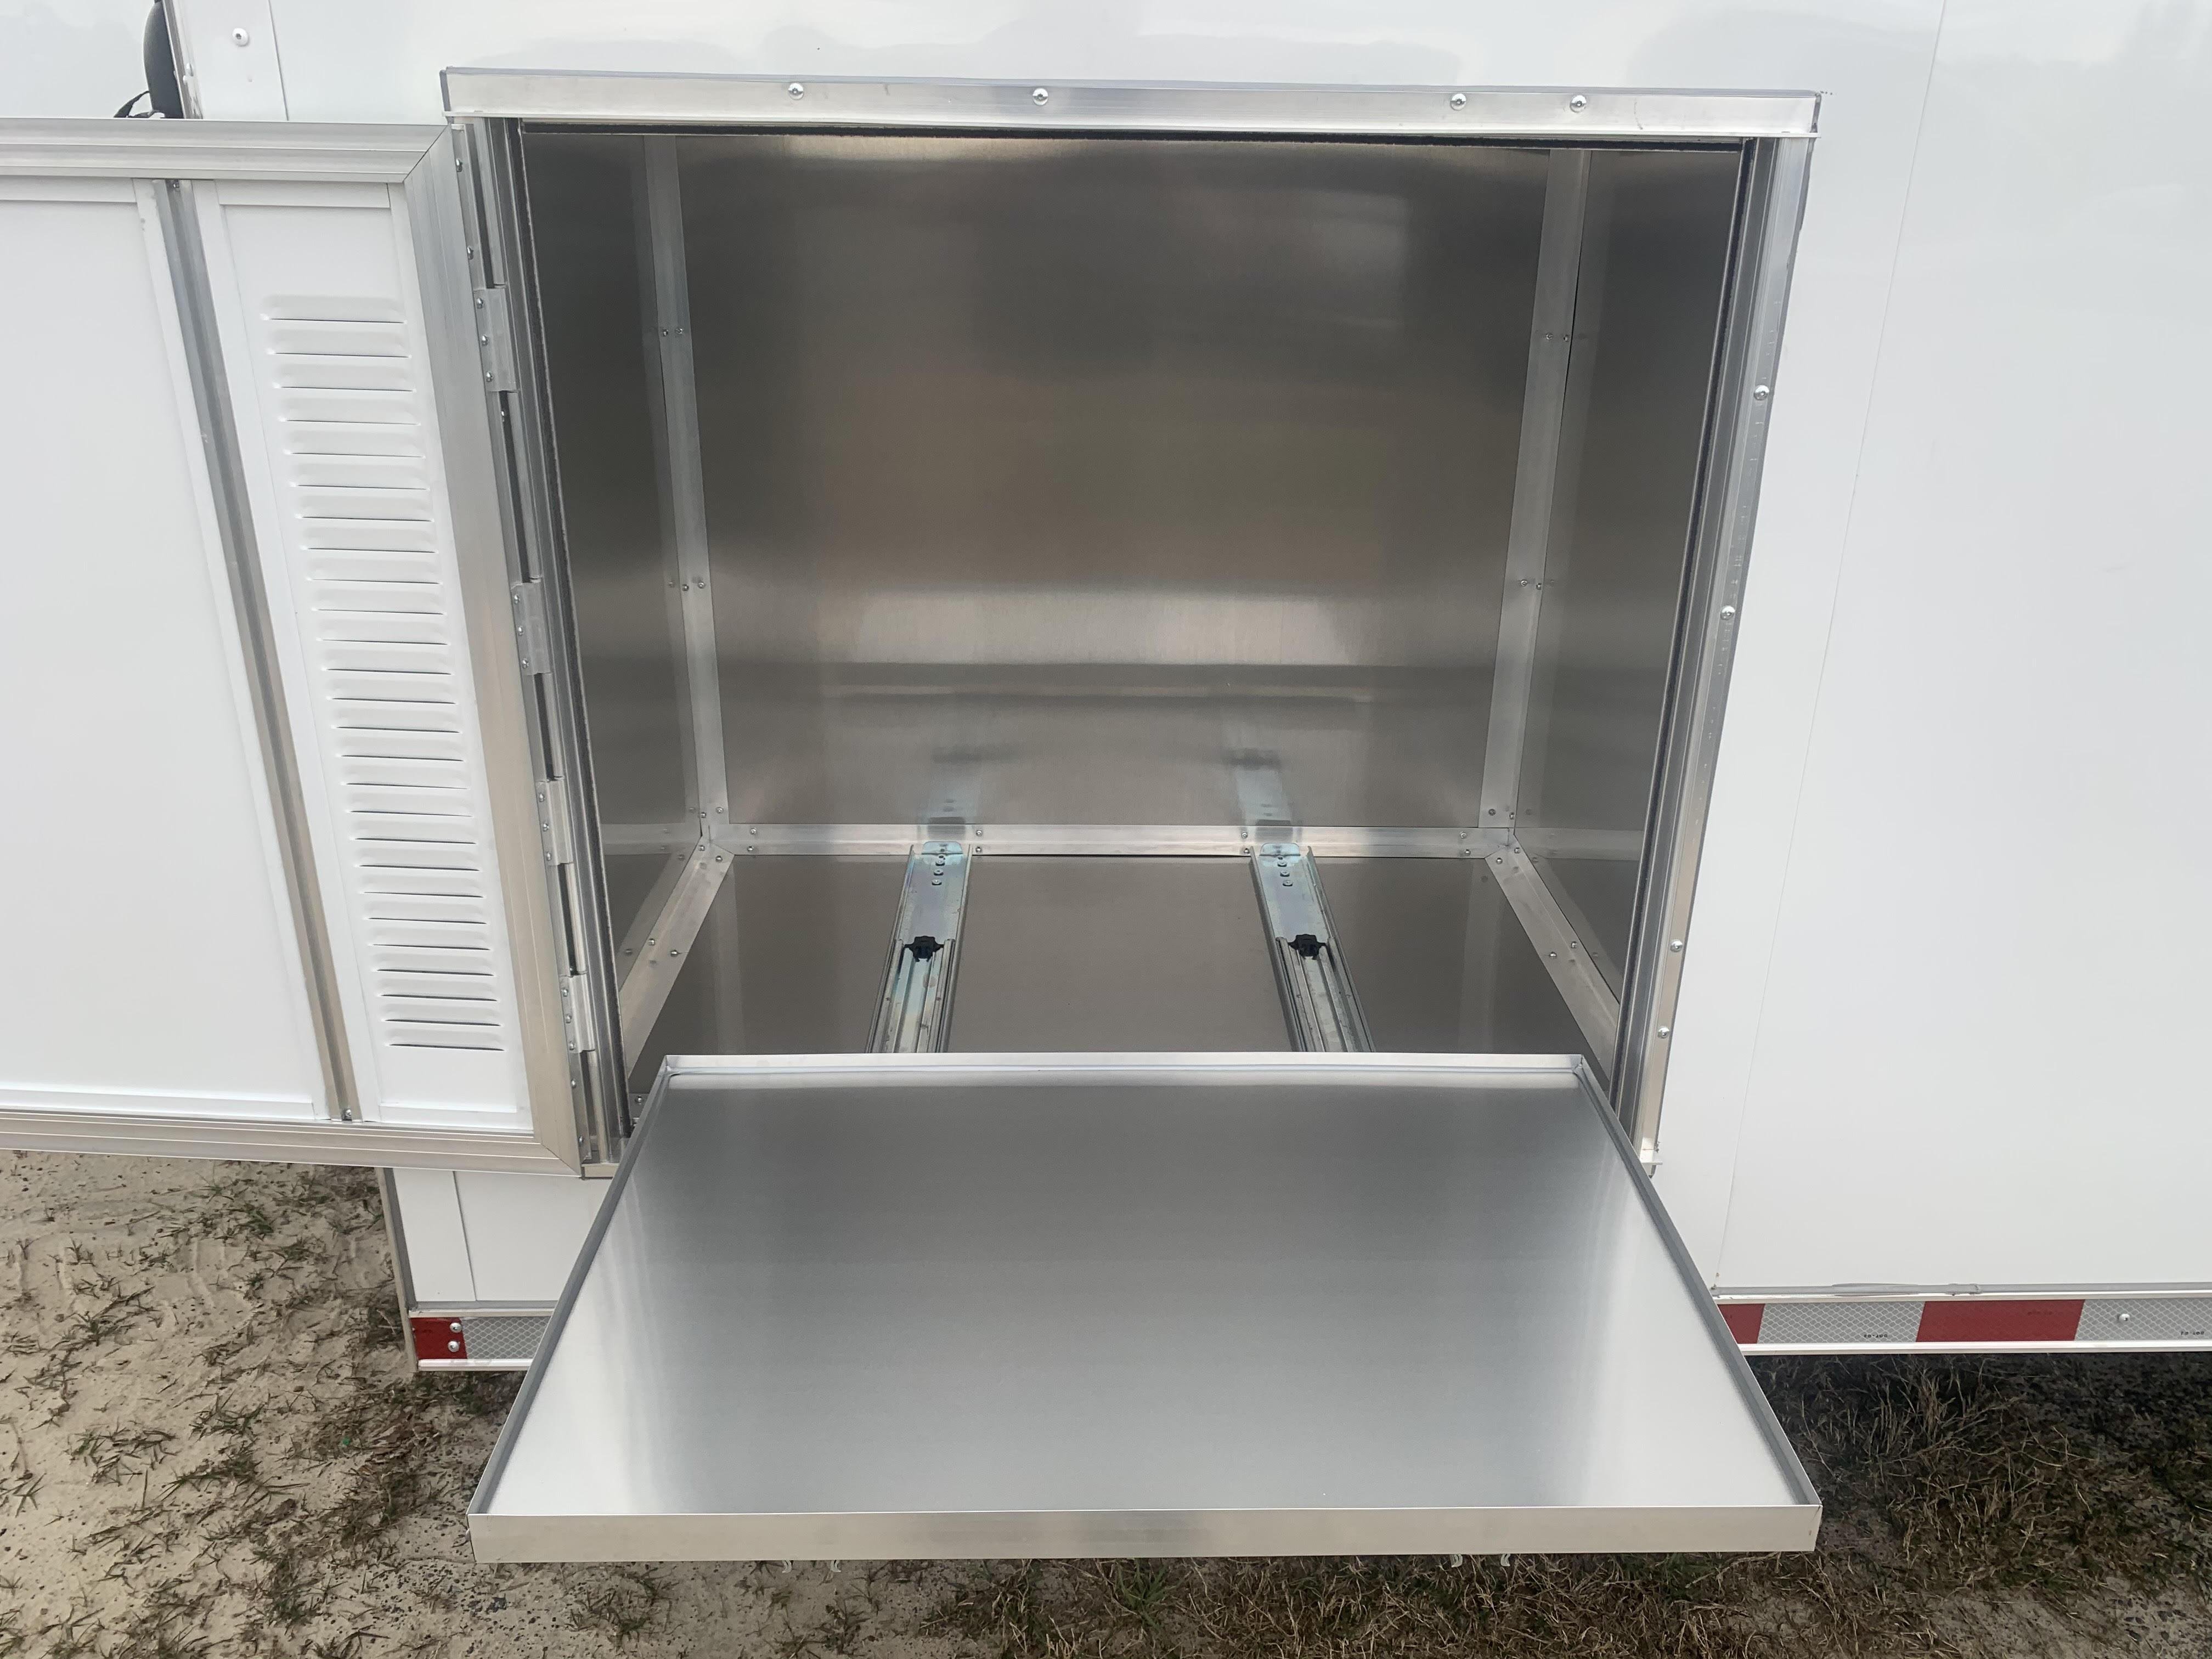 Insulated Generator Compartment w/ Slideout Tray $575